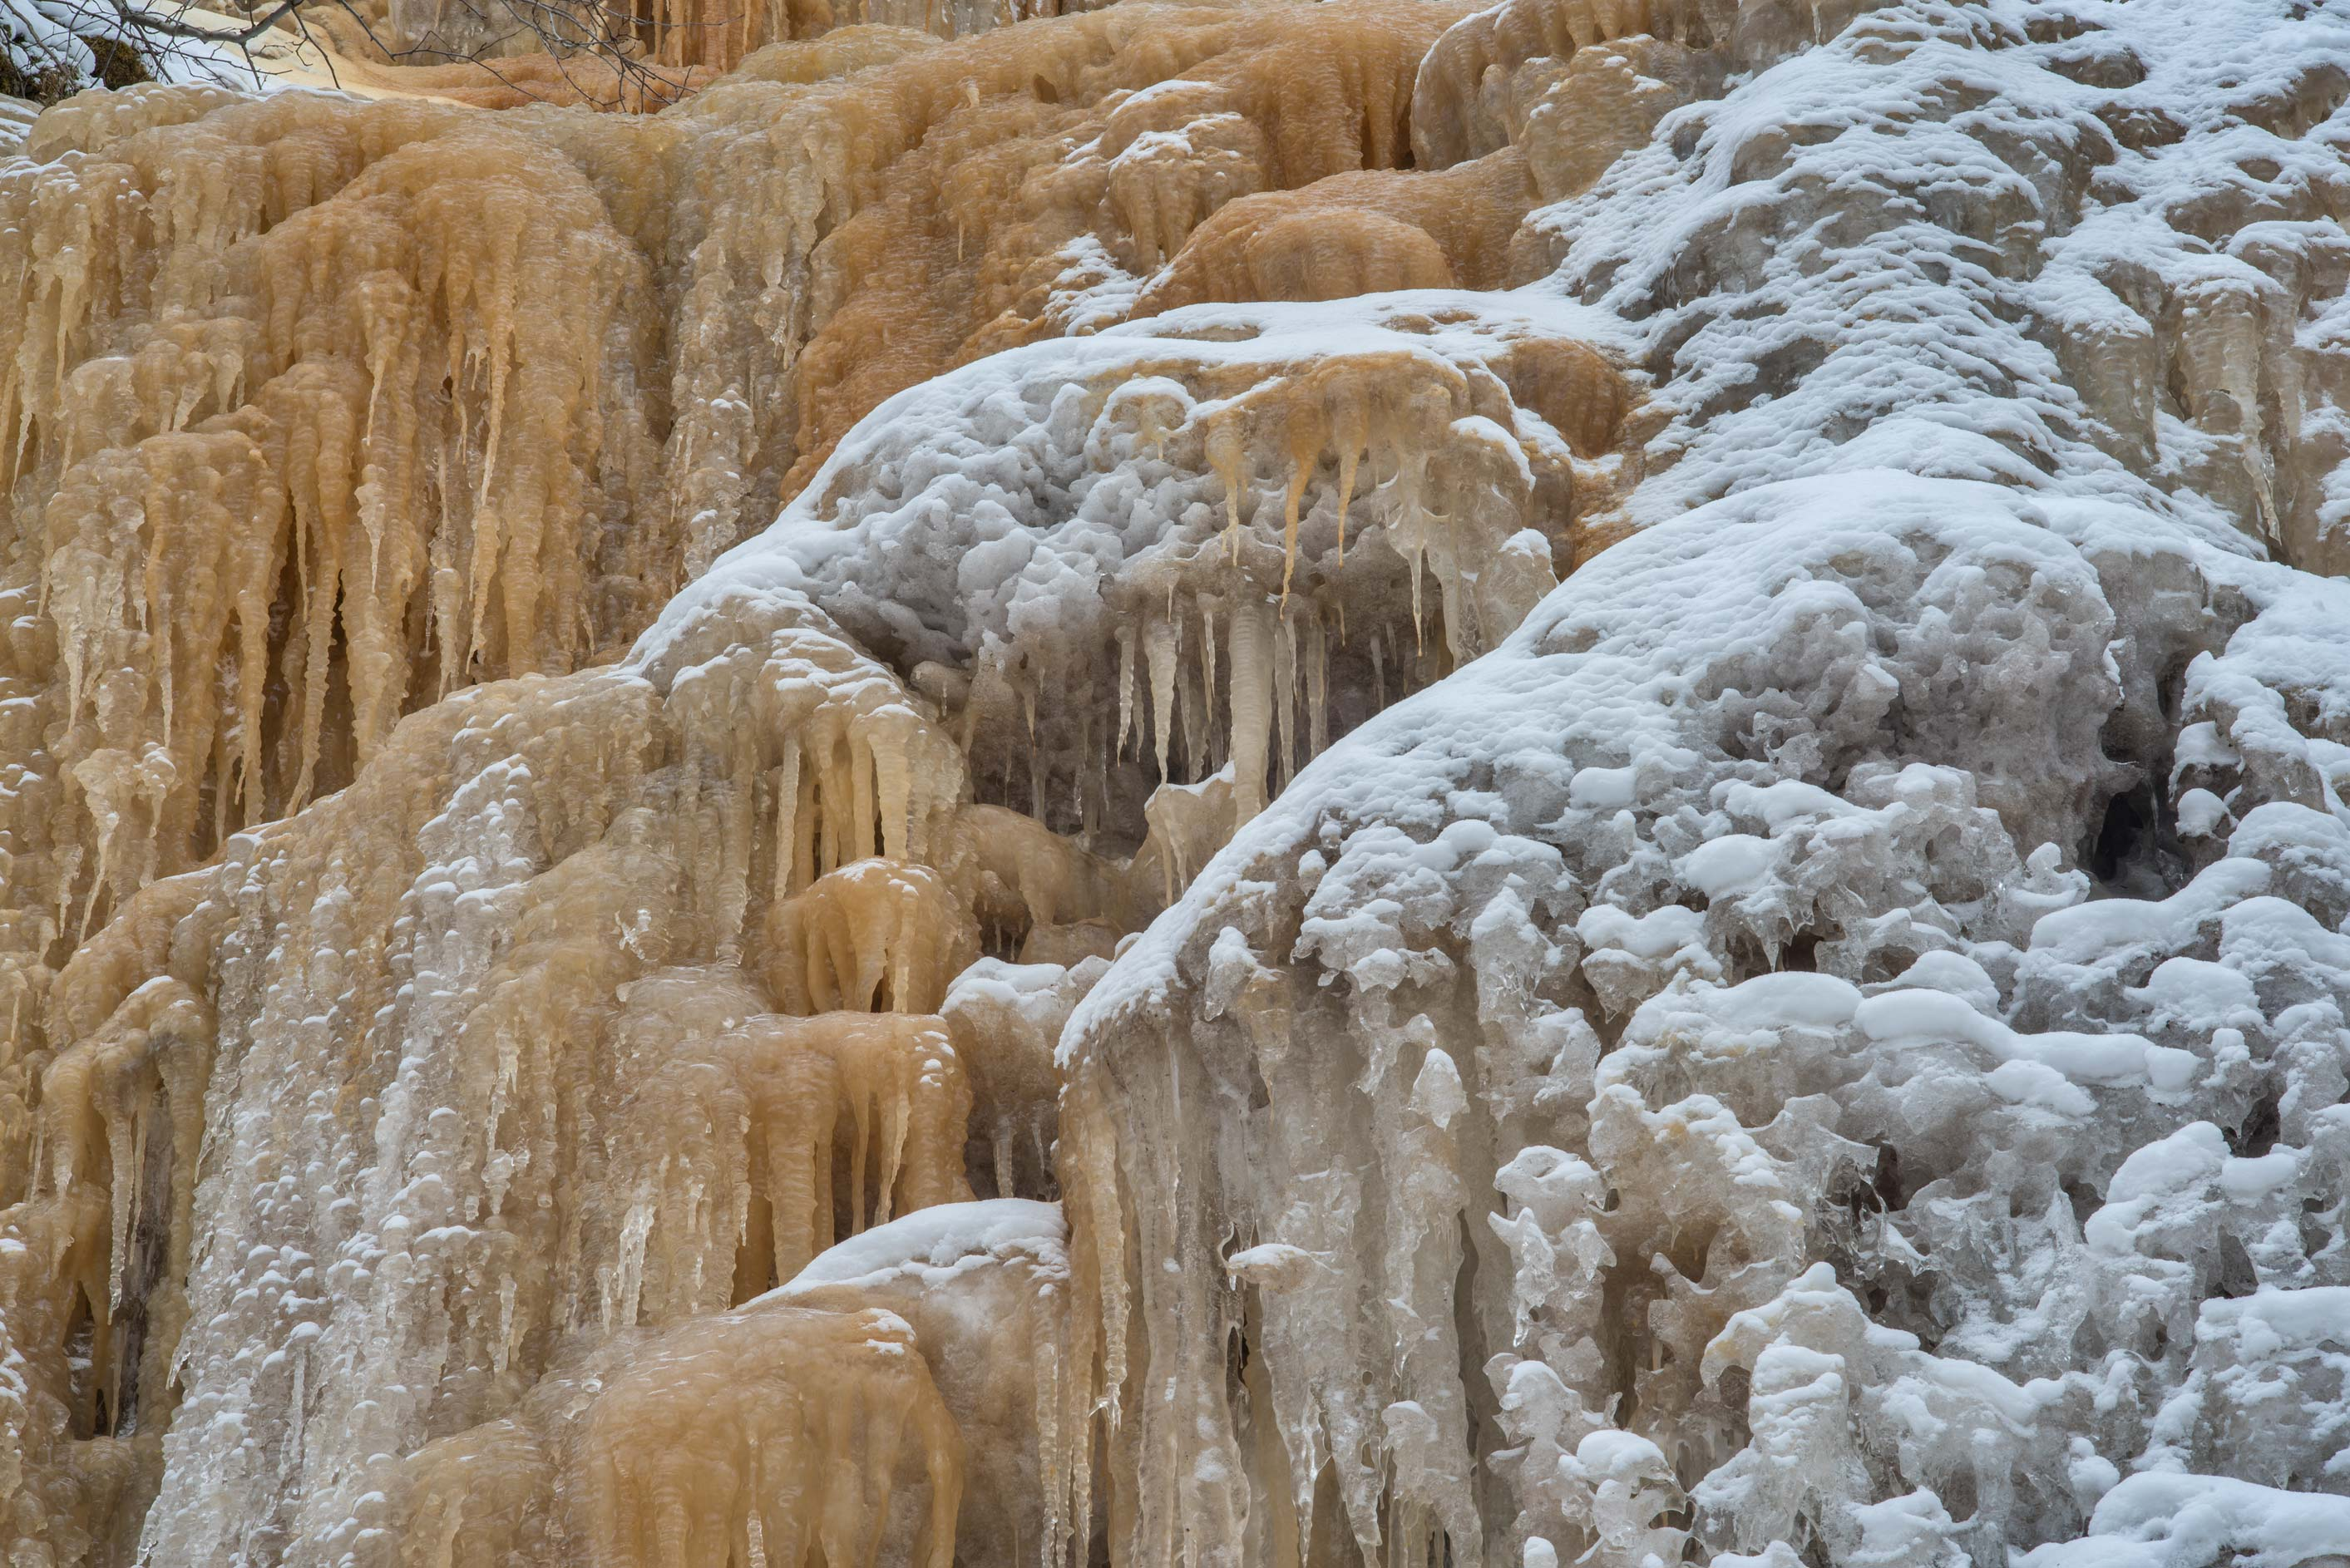 Snow and ice of Martsa Falls in Toyla-Oru Park near Kohtla-Jarve. Ida-Viru County, Estonia